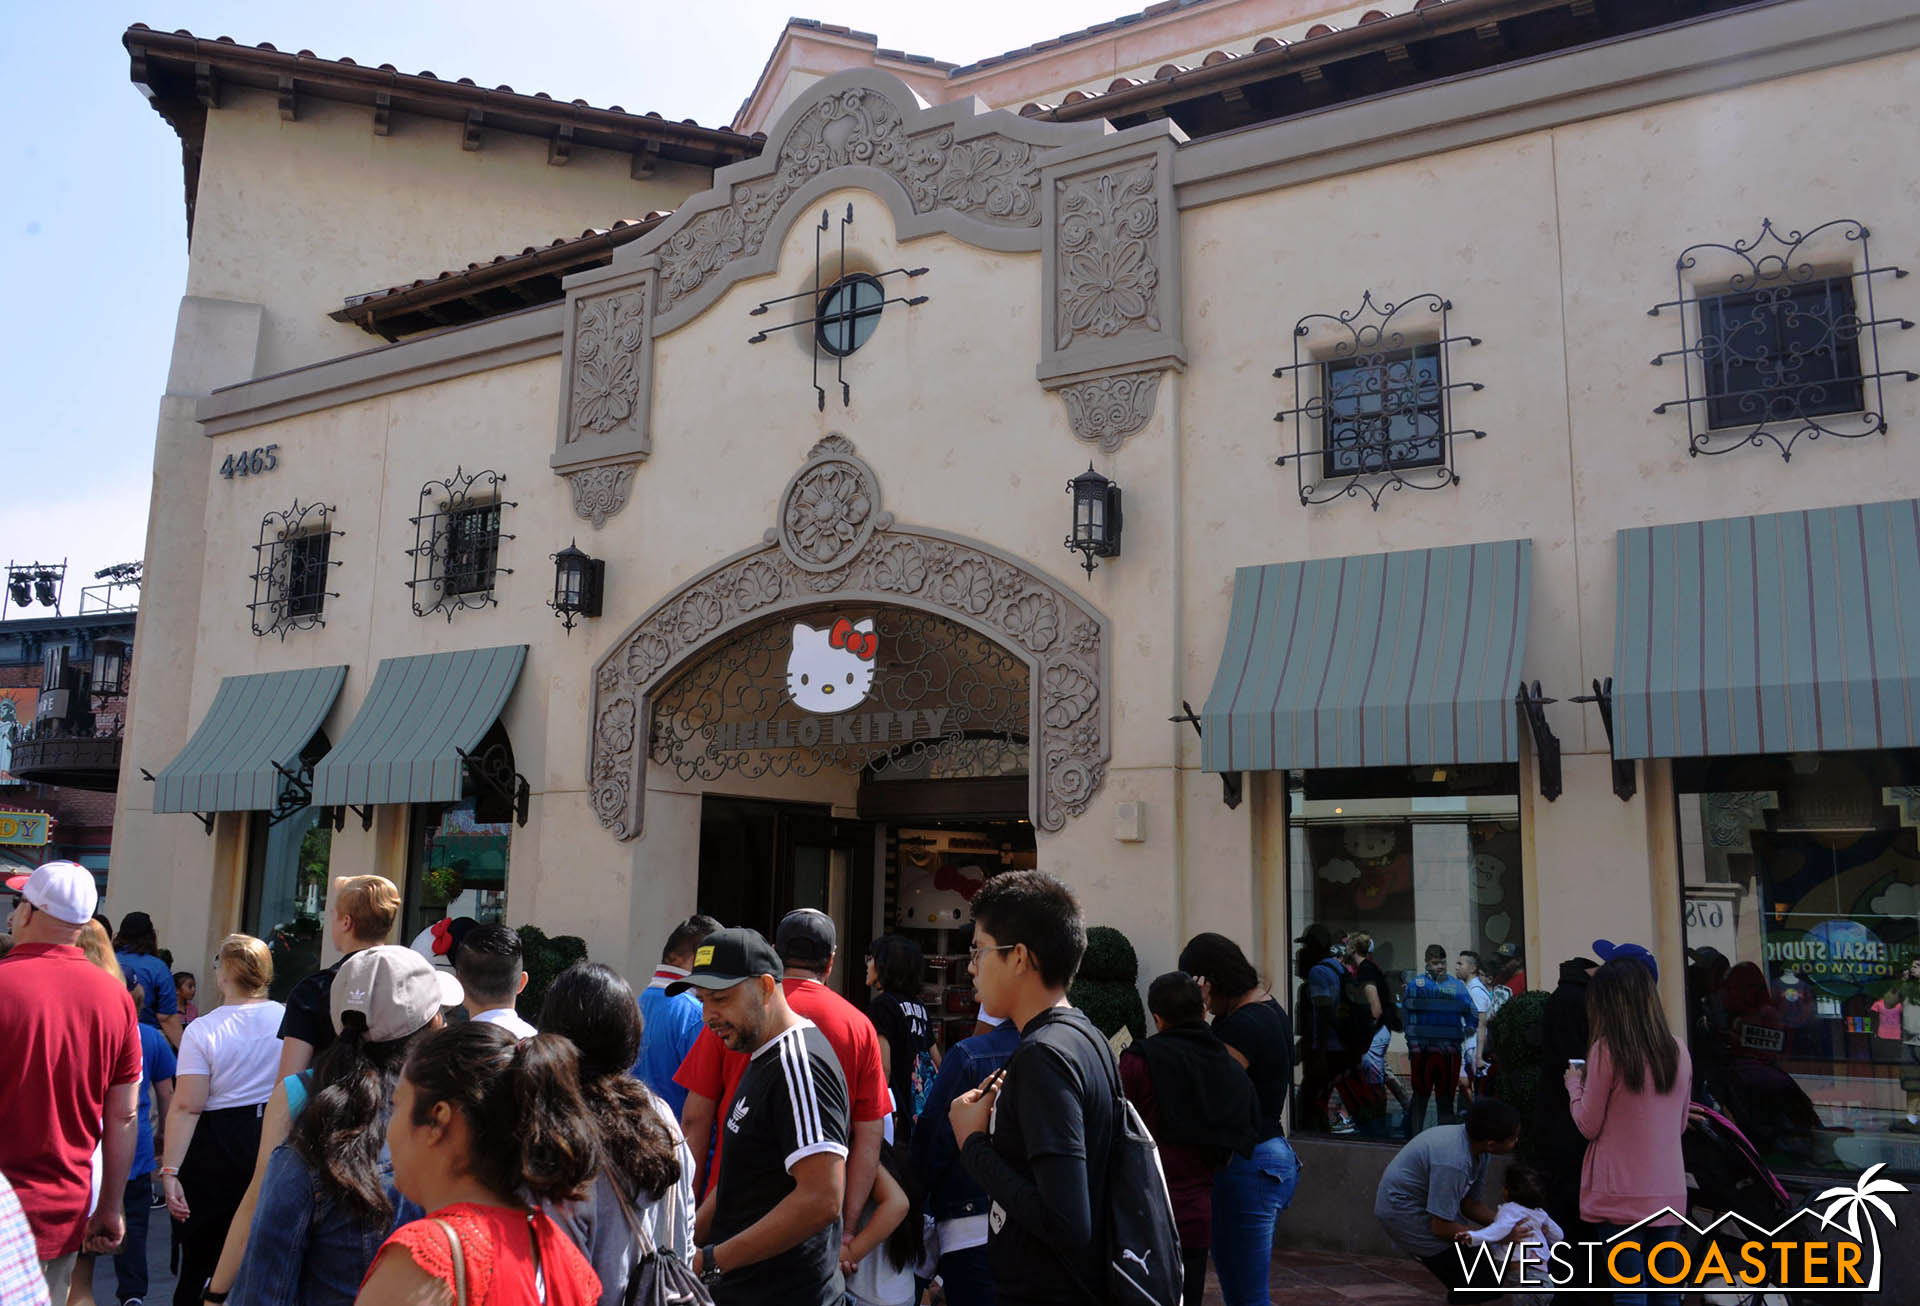 Apparently, Universal has gotten a Hello Kitty store.